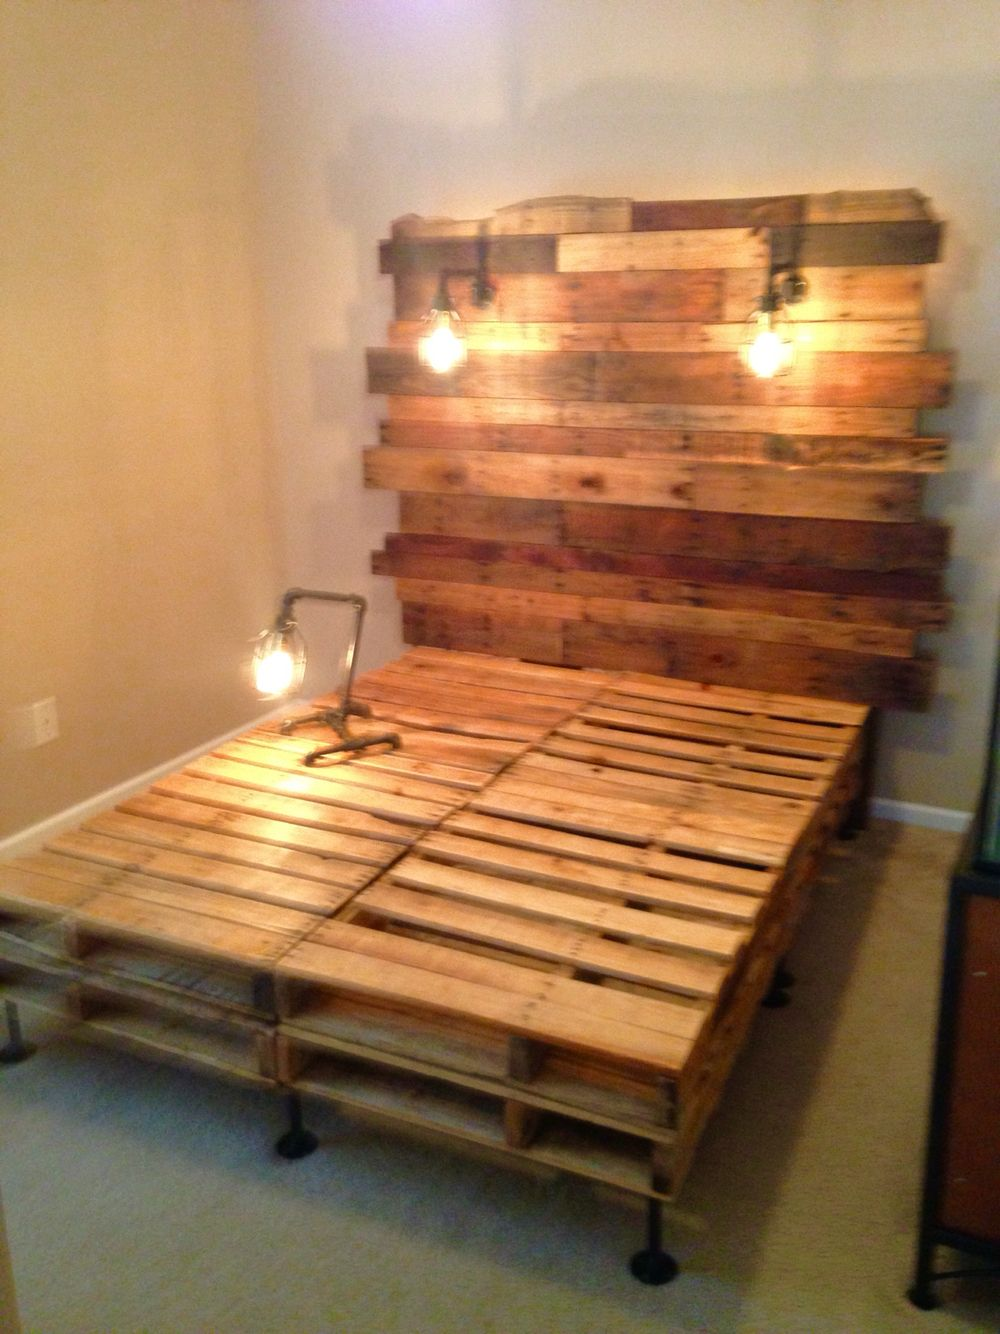 Pallet Bed With Edison Builds And Birdcage Light Frames Palletbed